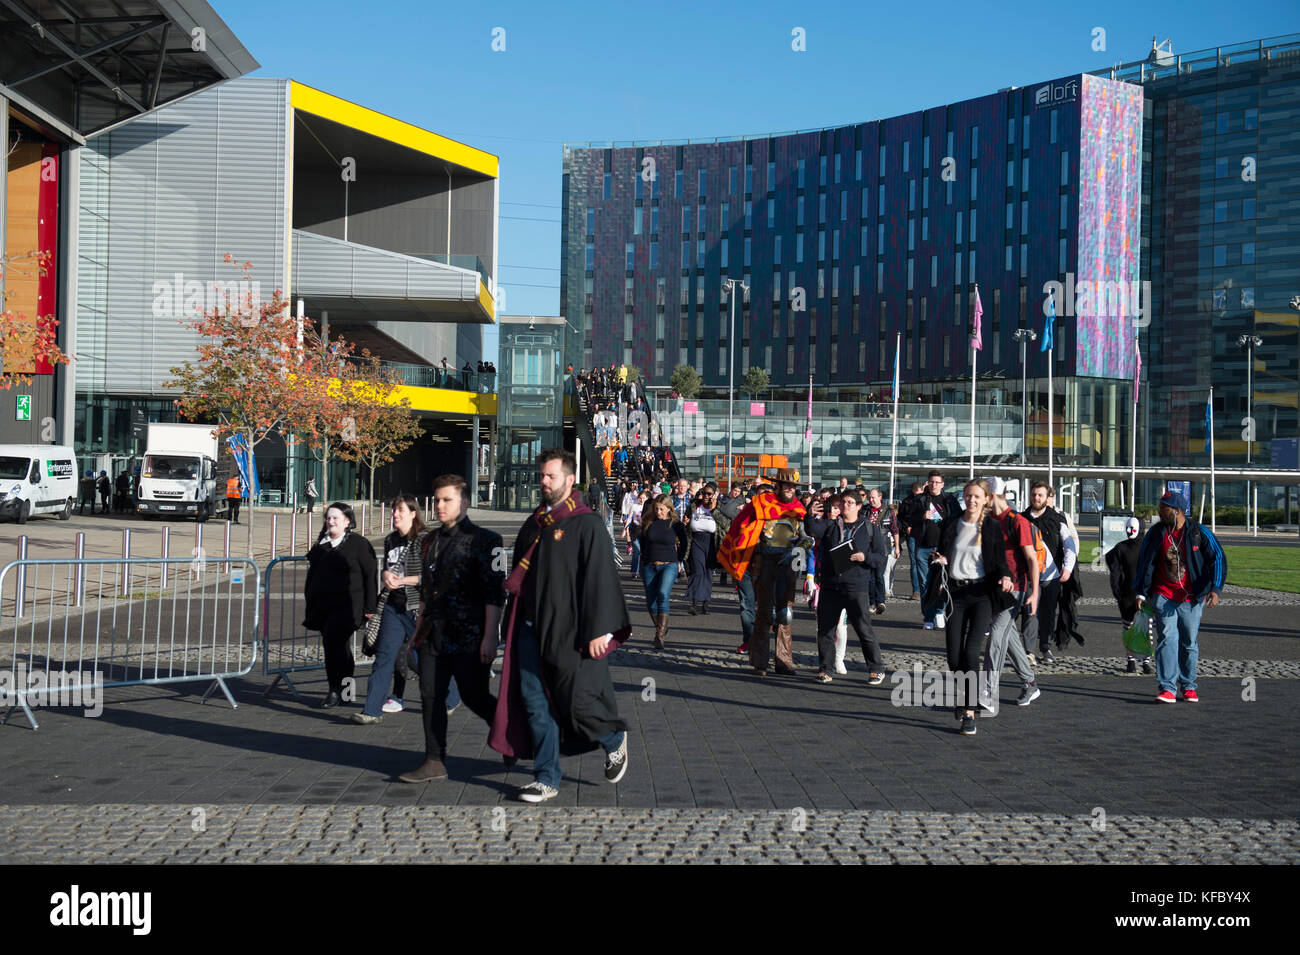 Mcm Comicon Stock Photos   Mcm Comicon Stock Images - Page 3 - Alamy c501528060256